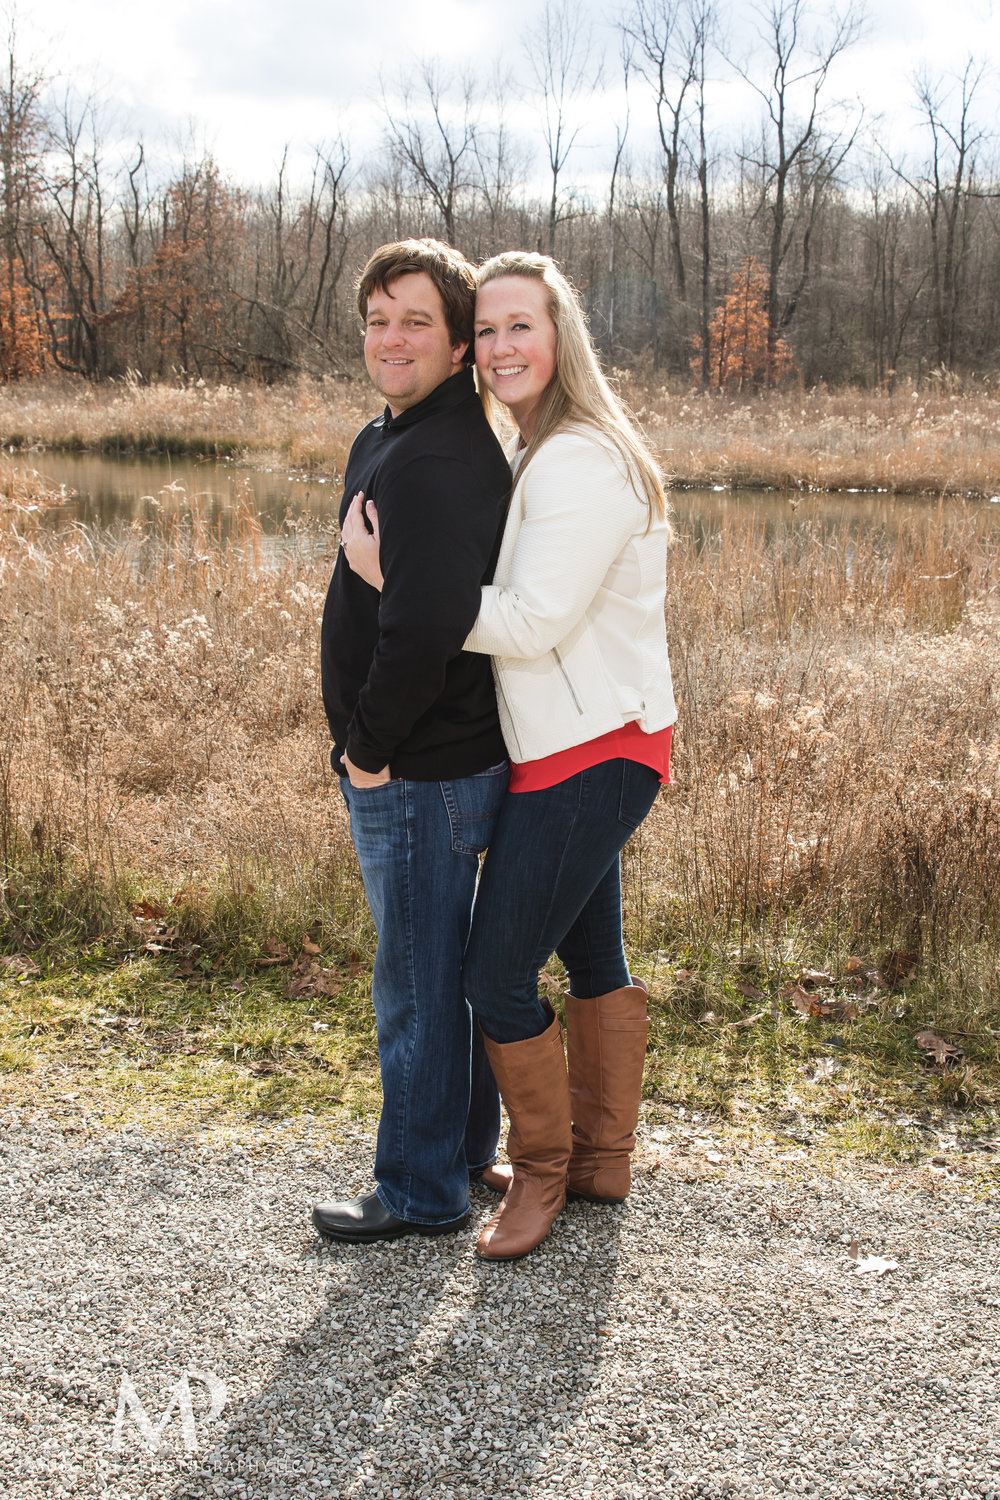 Gahanna-Columbus-Ohio-Winter-Engagement-Portrait-Photographer-Outdoors-muschlitz-photography005.JPG